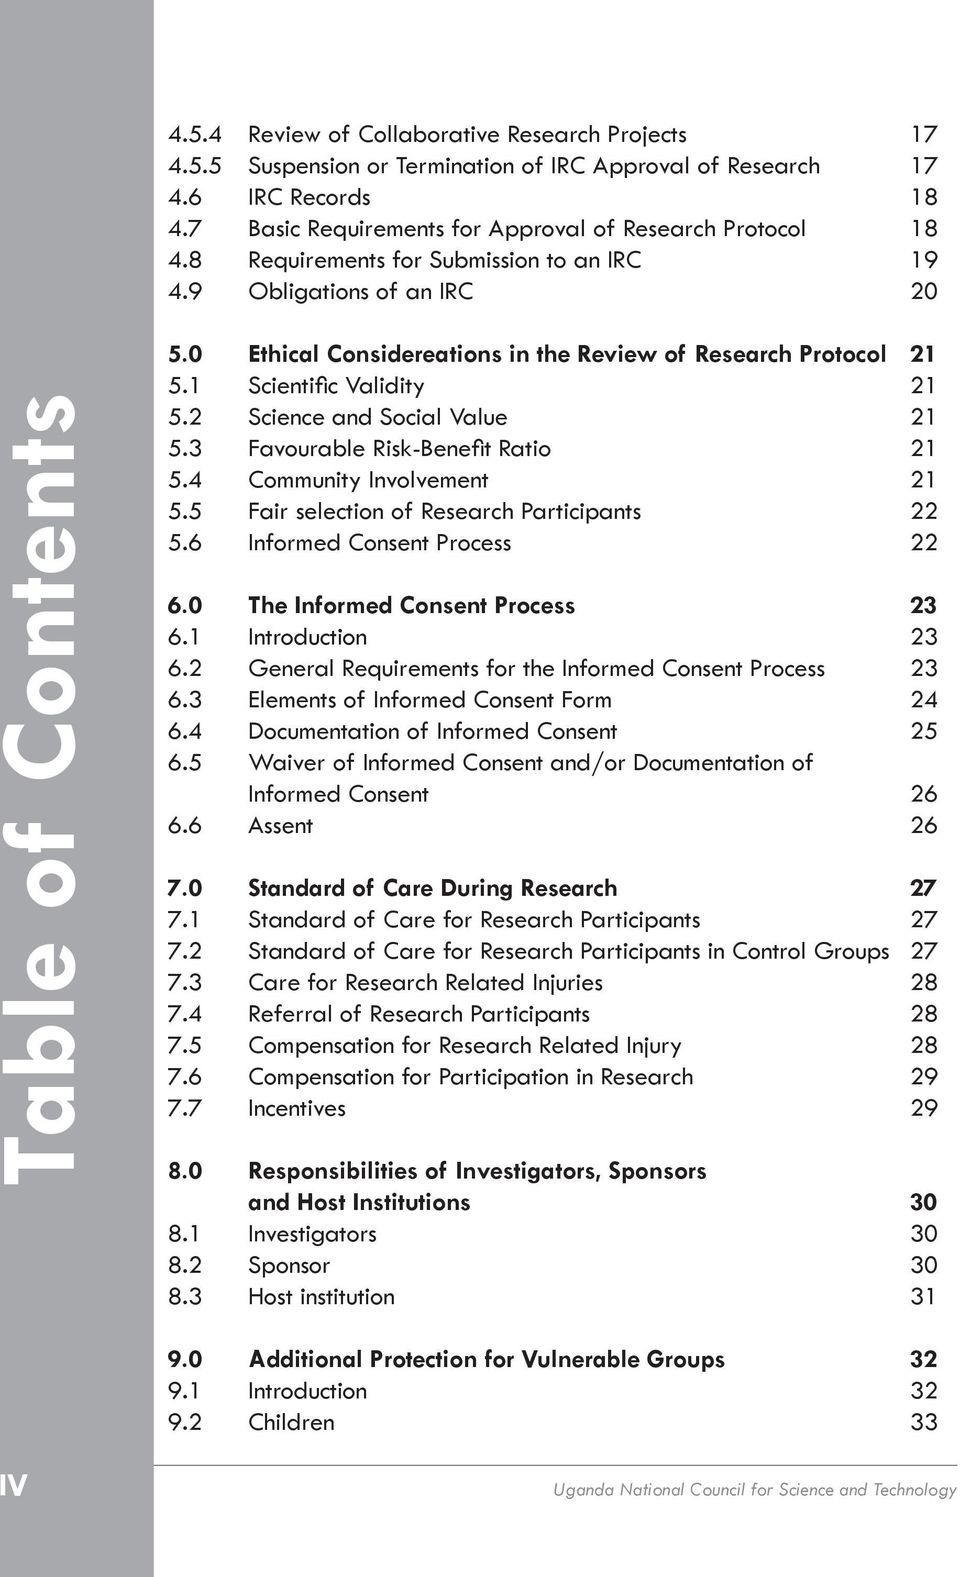 2 Science and Social Value 21 5.3 Favourable Risk-Benefit Ratio 21 5.4 Community Involvement 21 5.5 Fair selection of Research Participants 22 5.6 Informed Consent Process 22 6.